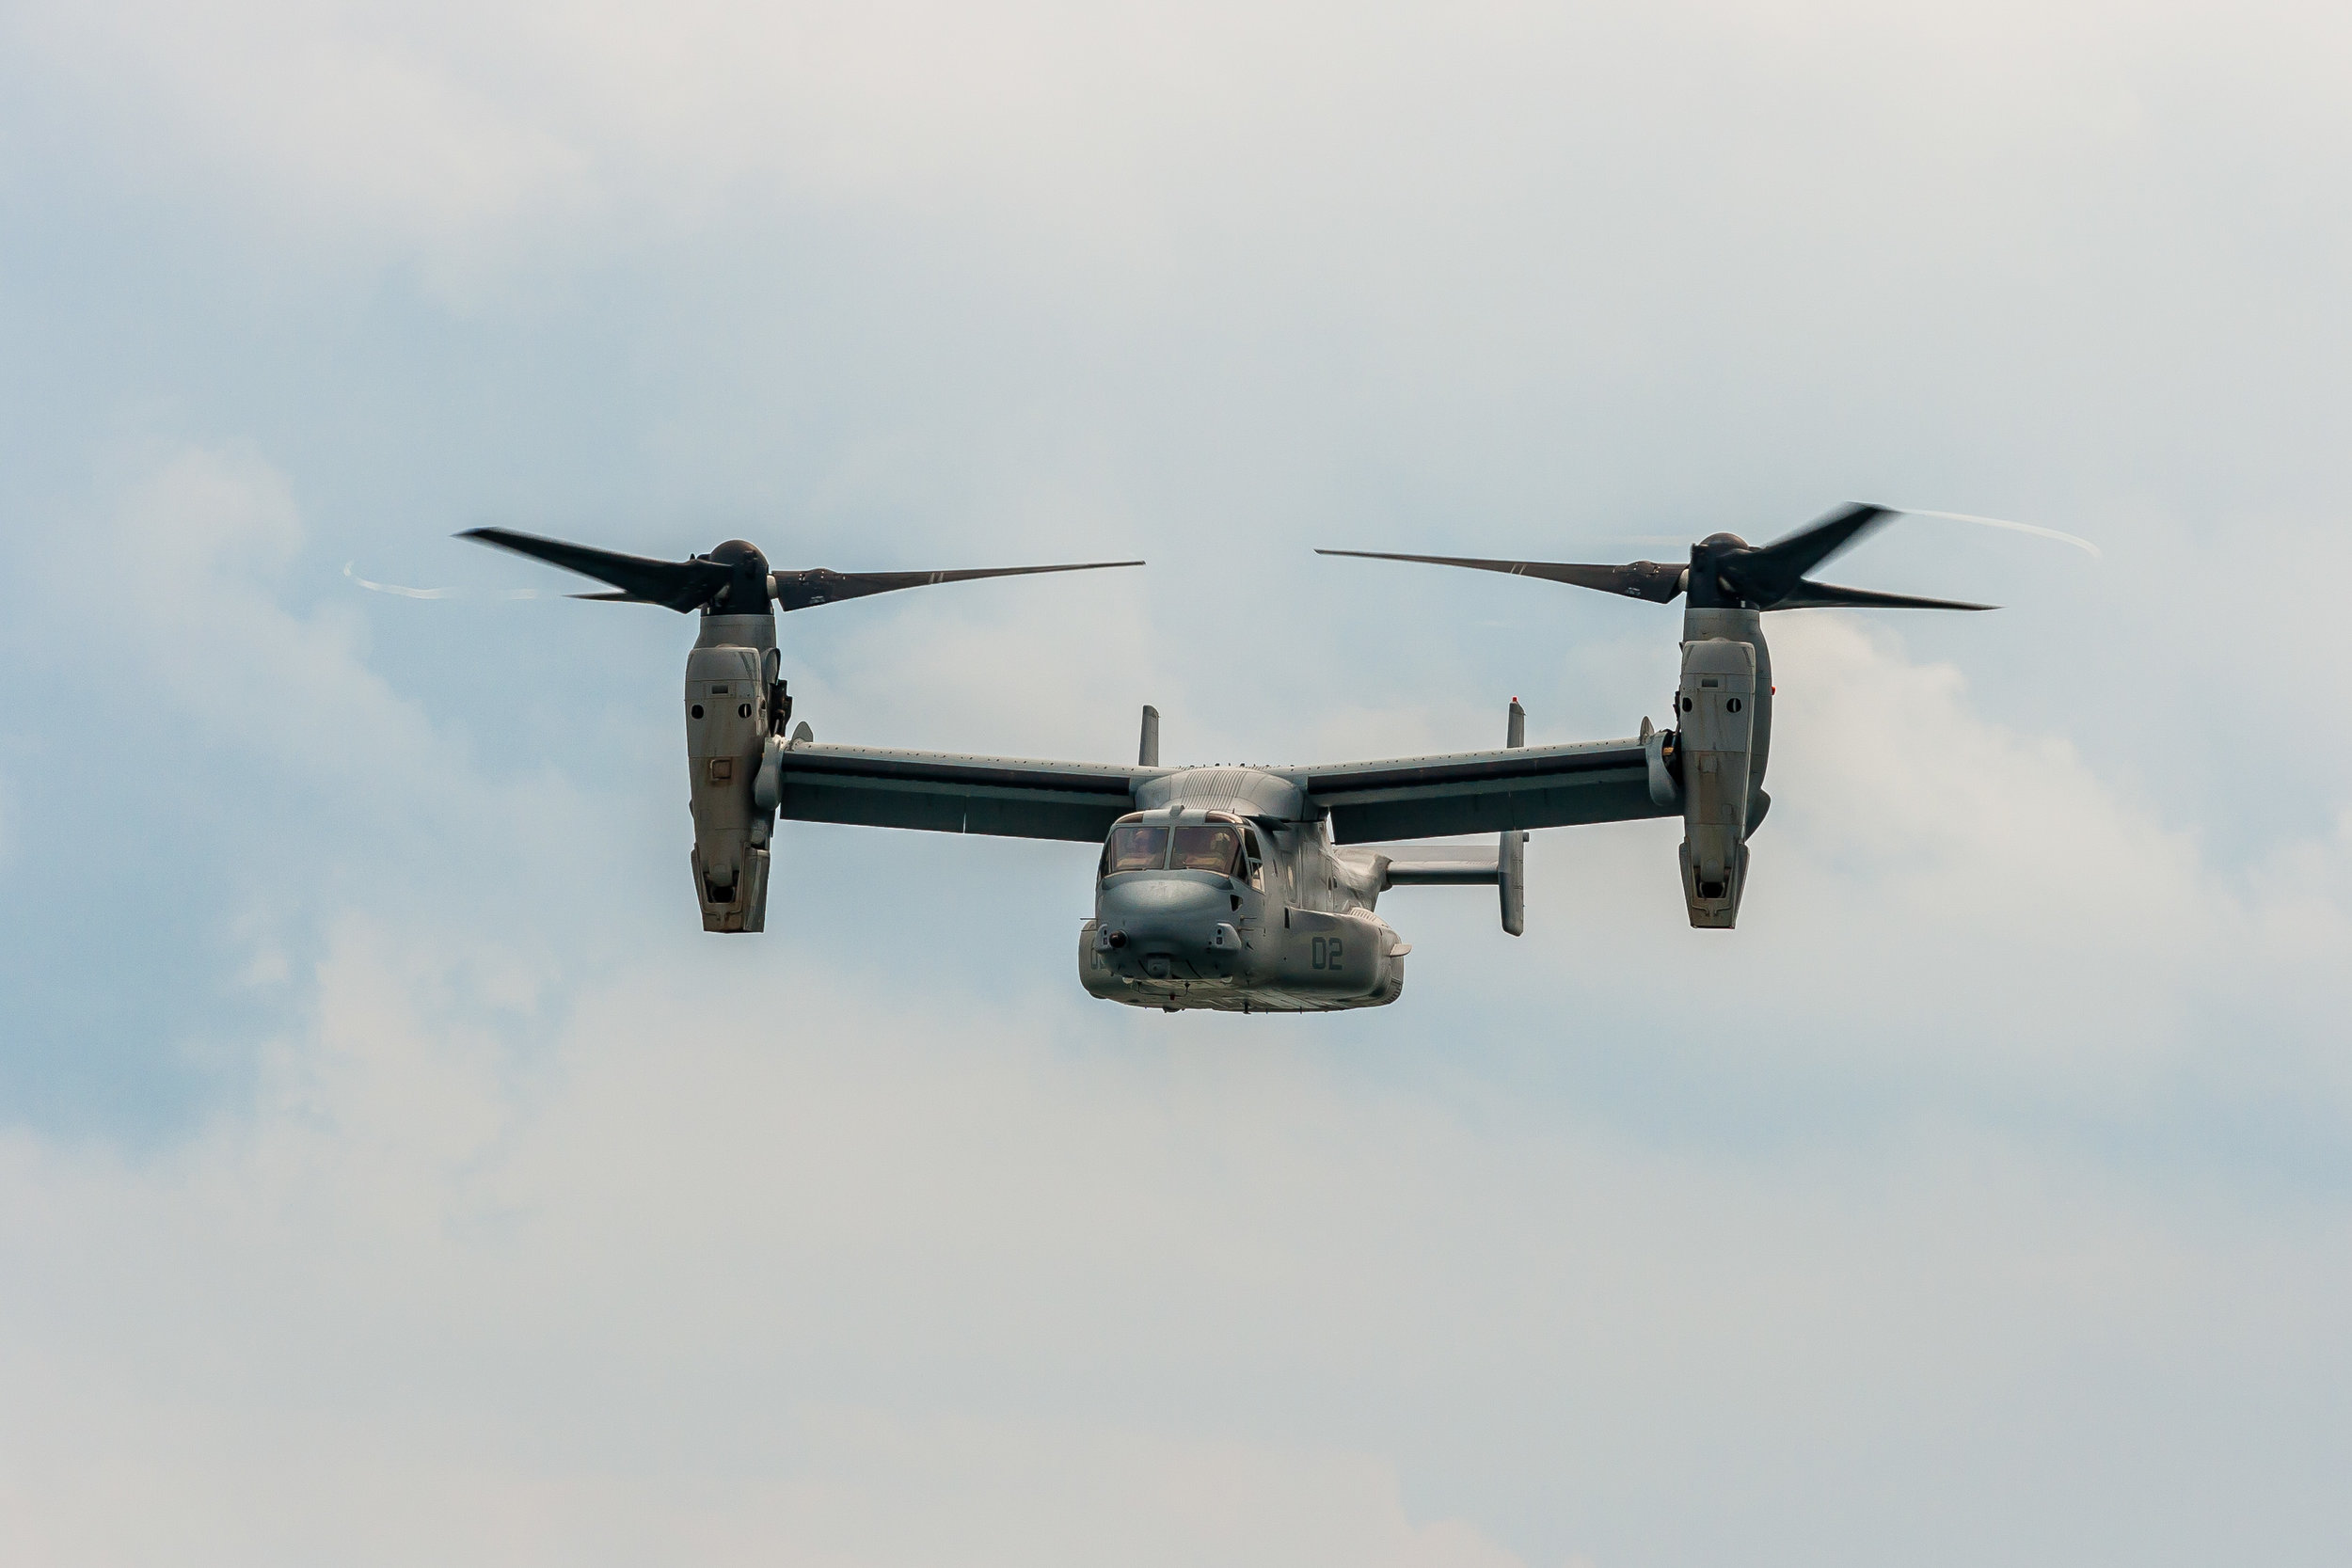 The Osprey at the Air Show